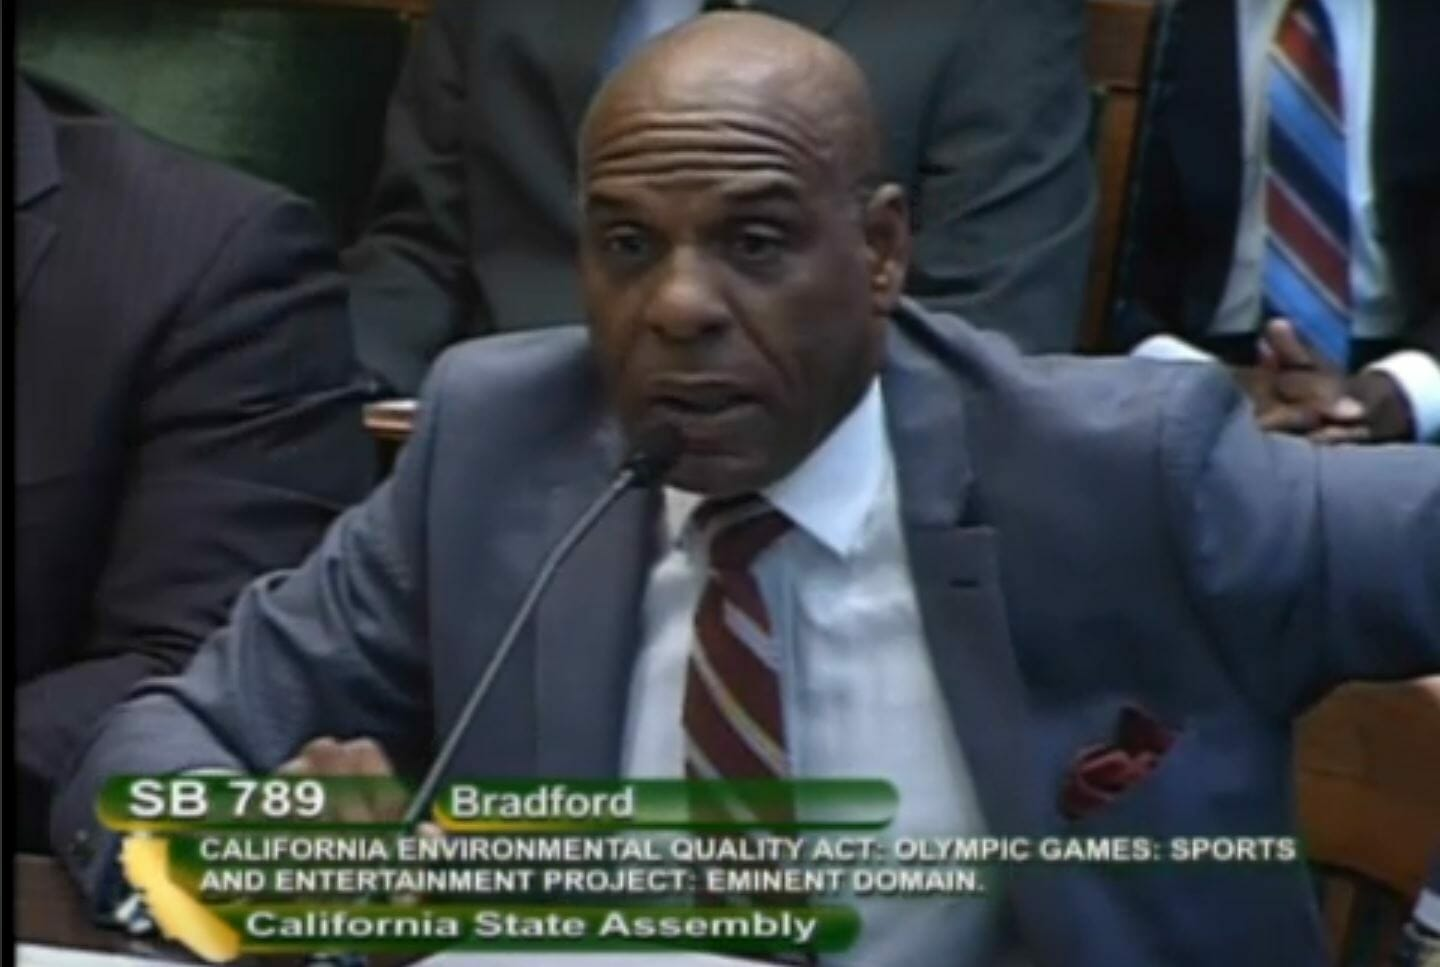 California State Senator Steve Bradford Defends SB 789 in Committee